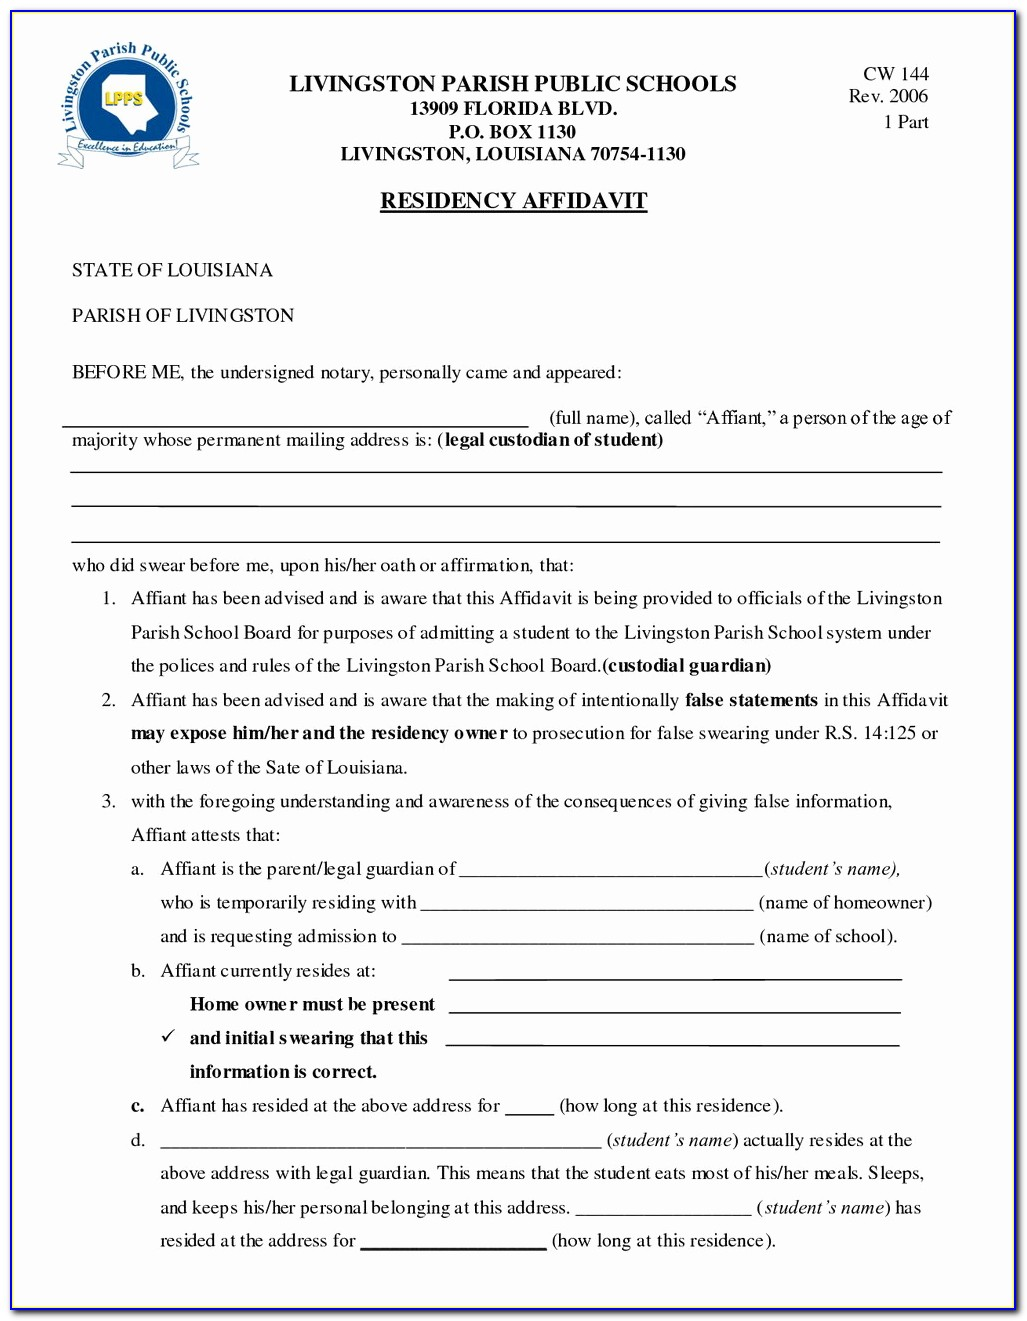 Temporary Custody Forms Texas Awesome Free Printable Temporary Guardianship Form Unique Emergency